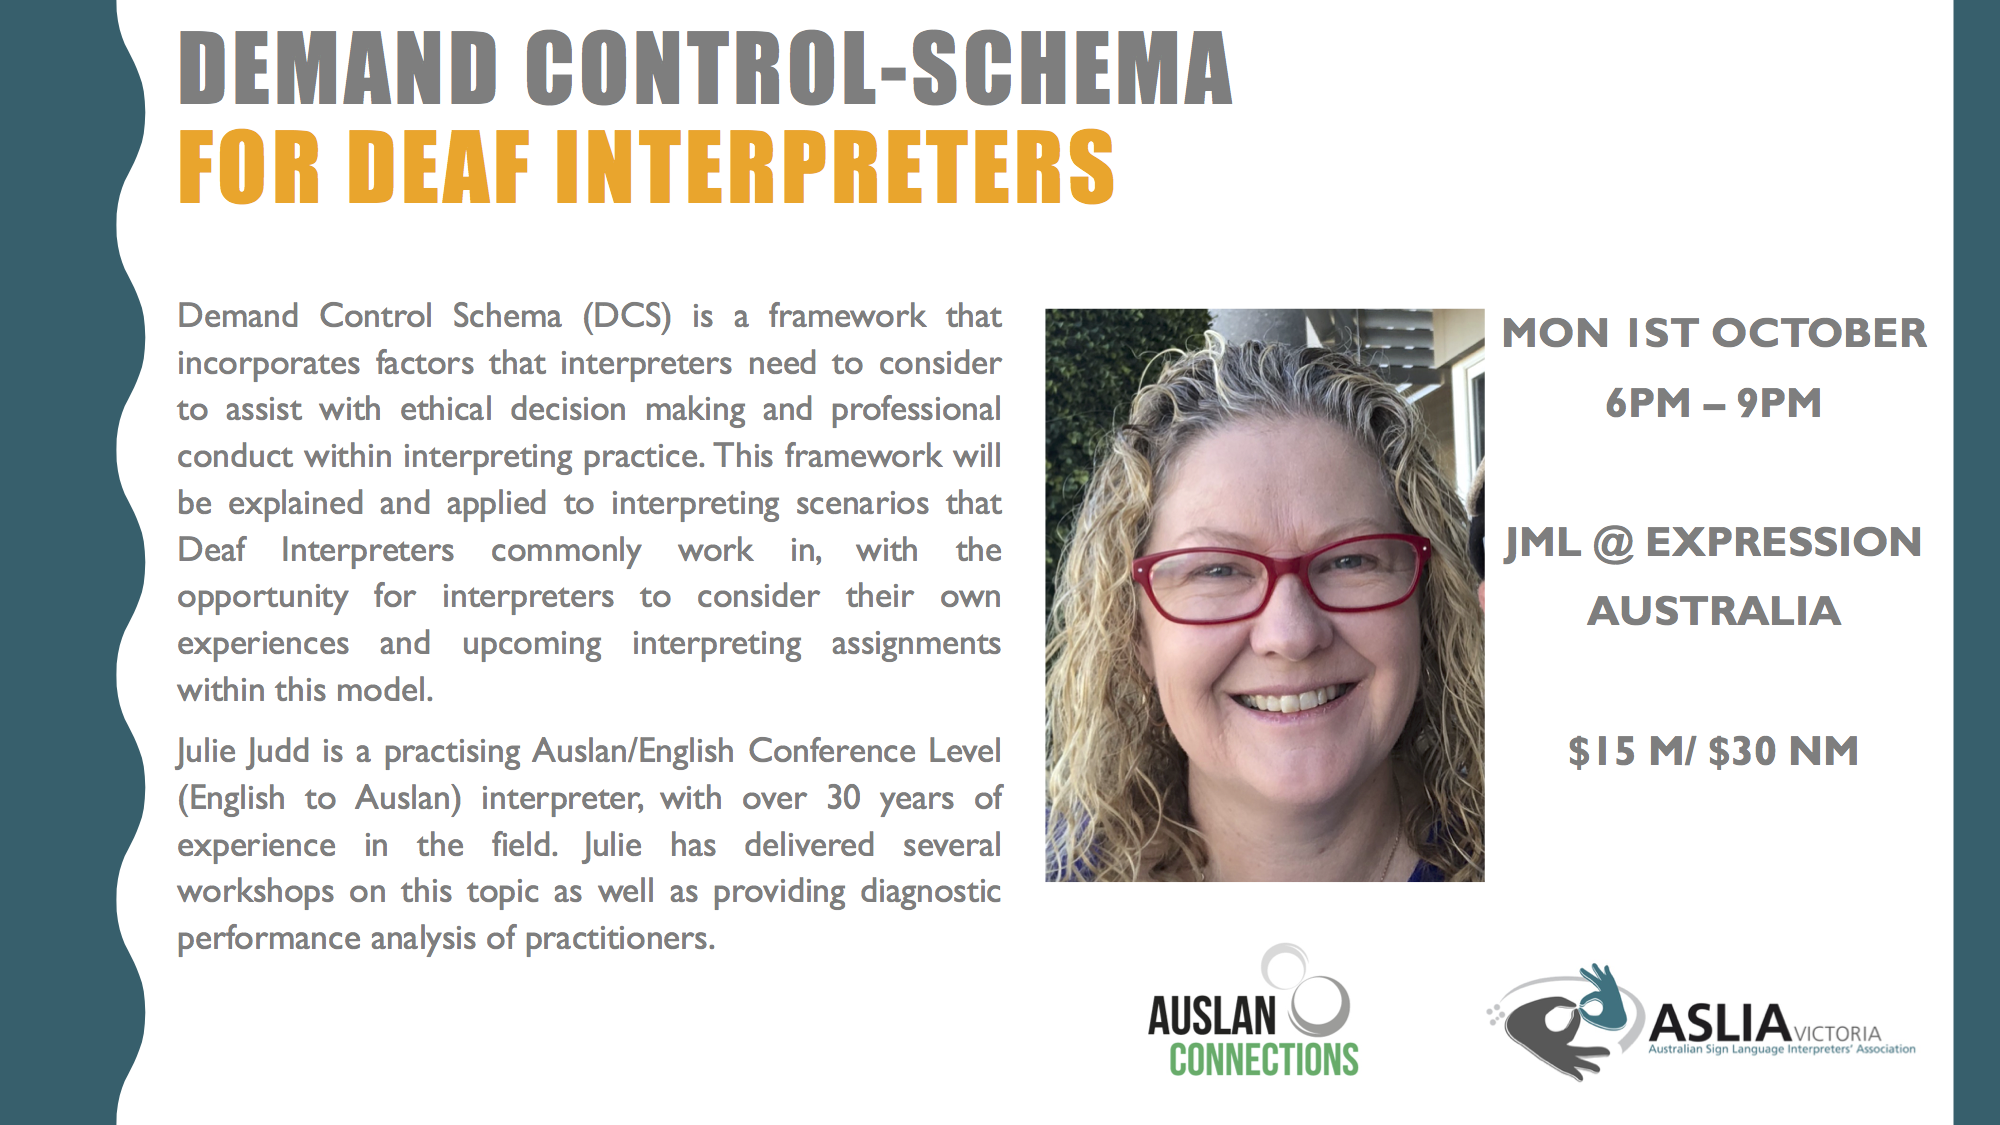 Demand Control Schema for Deaf Interpreters